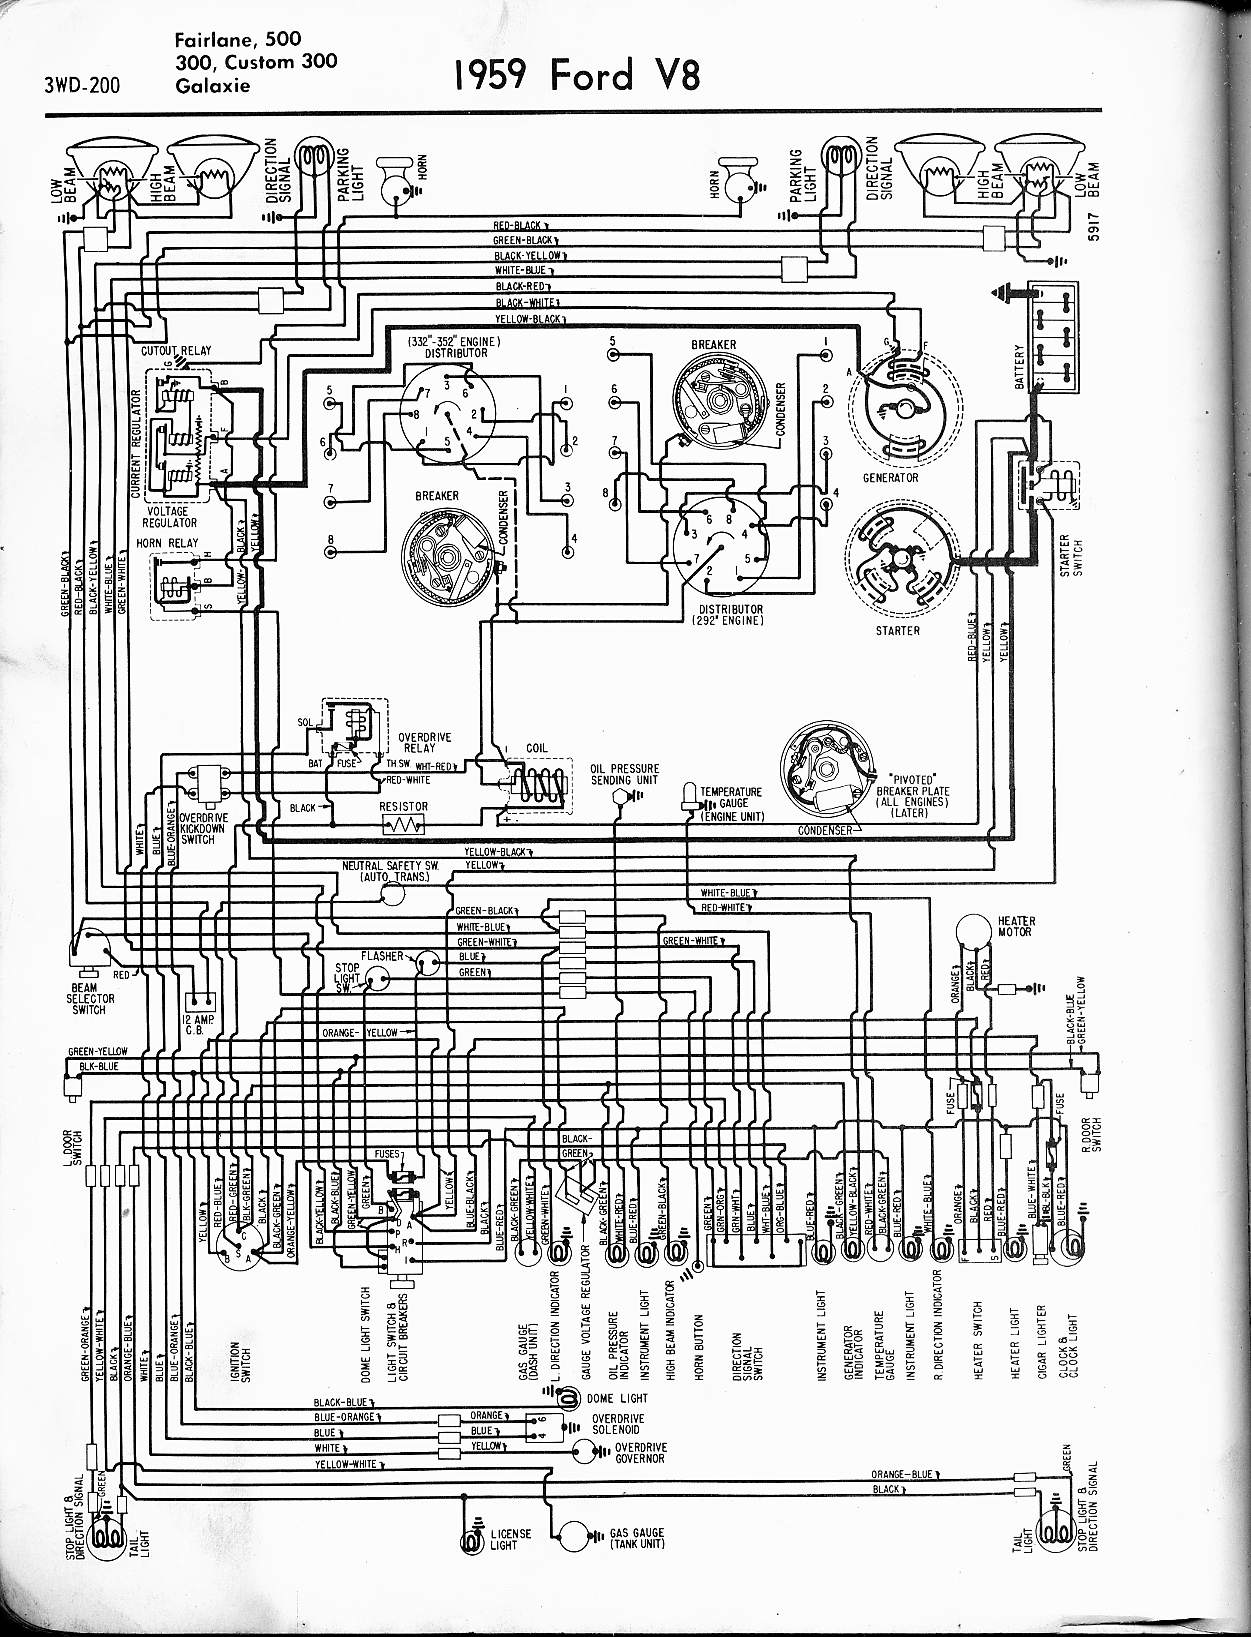 Ford Galaxie Cluster Wiring Diagram Will Be A Thing Mustang Msd 6al Custom Diagrams 57 65 Rh Oldcarmanualproject Com 1966 Ignition Switch Ranger